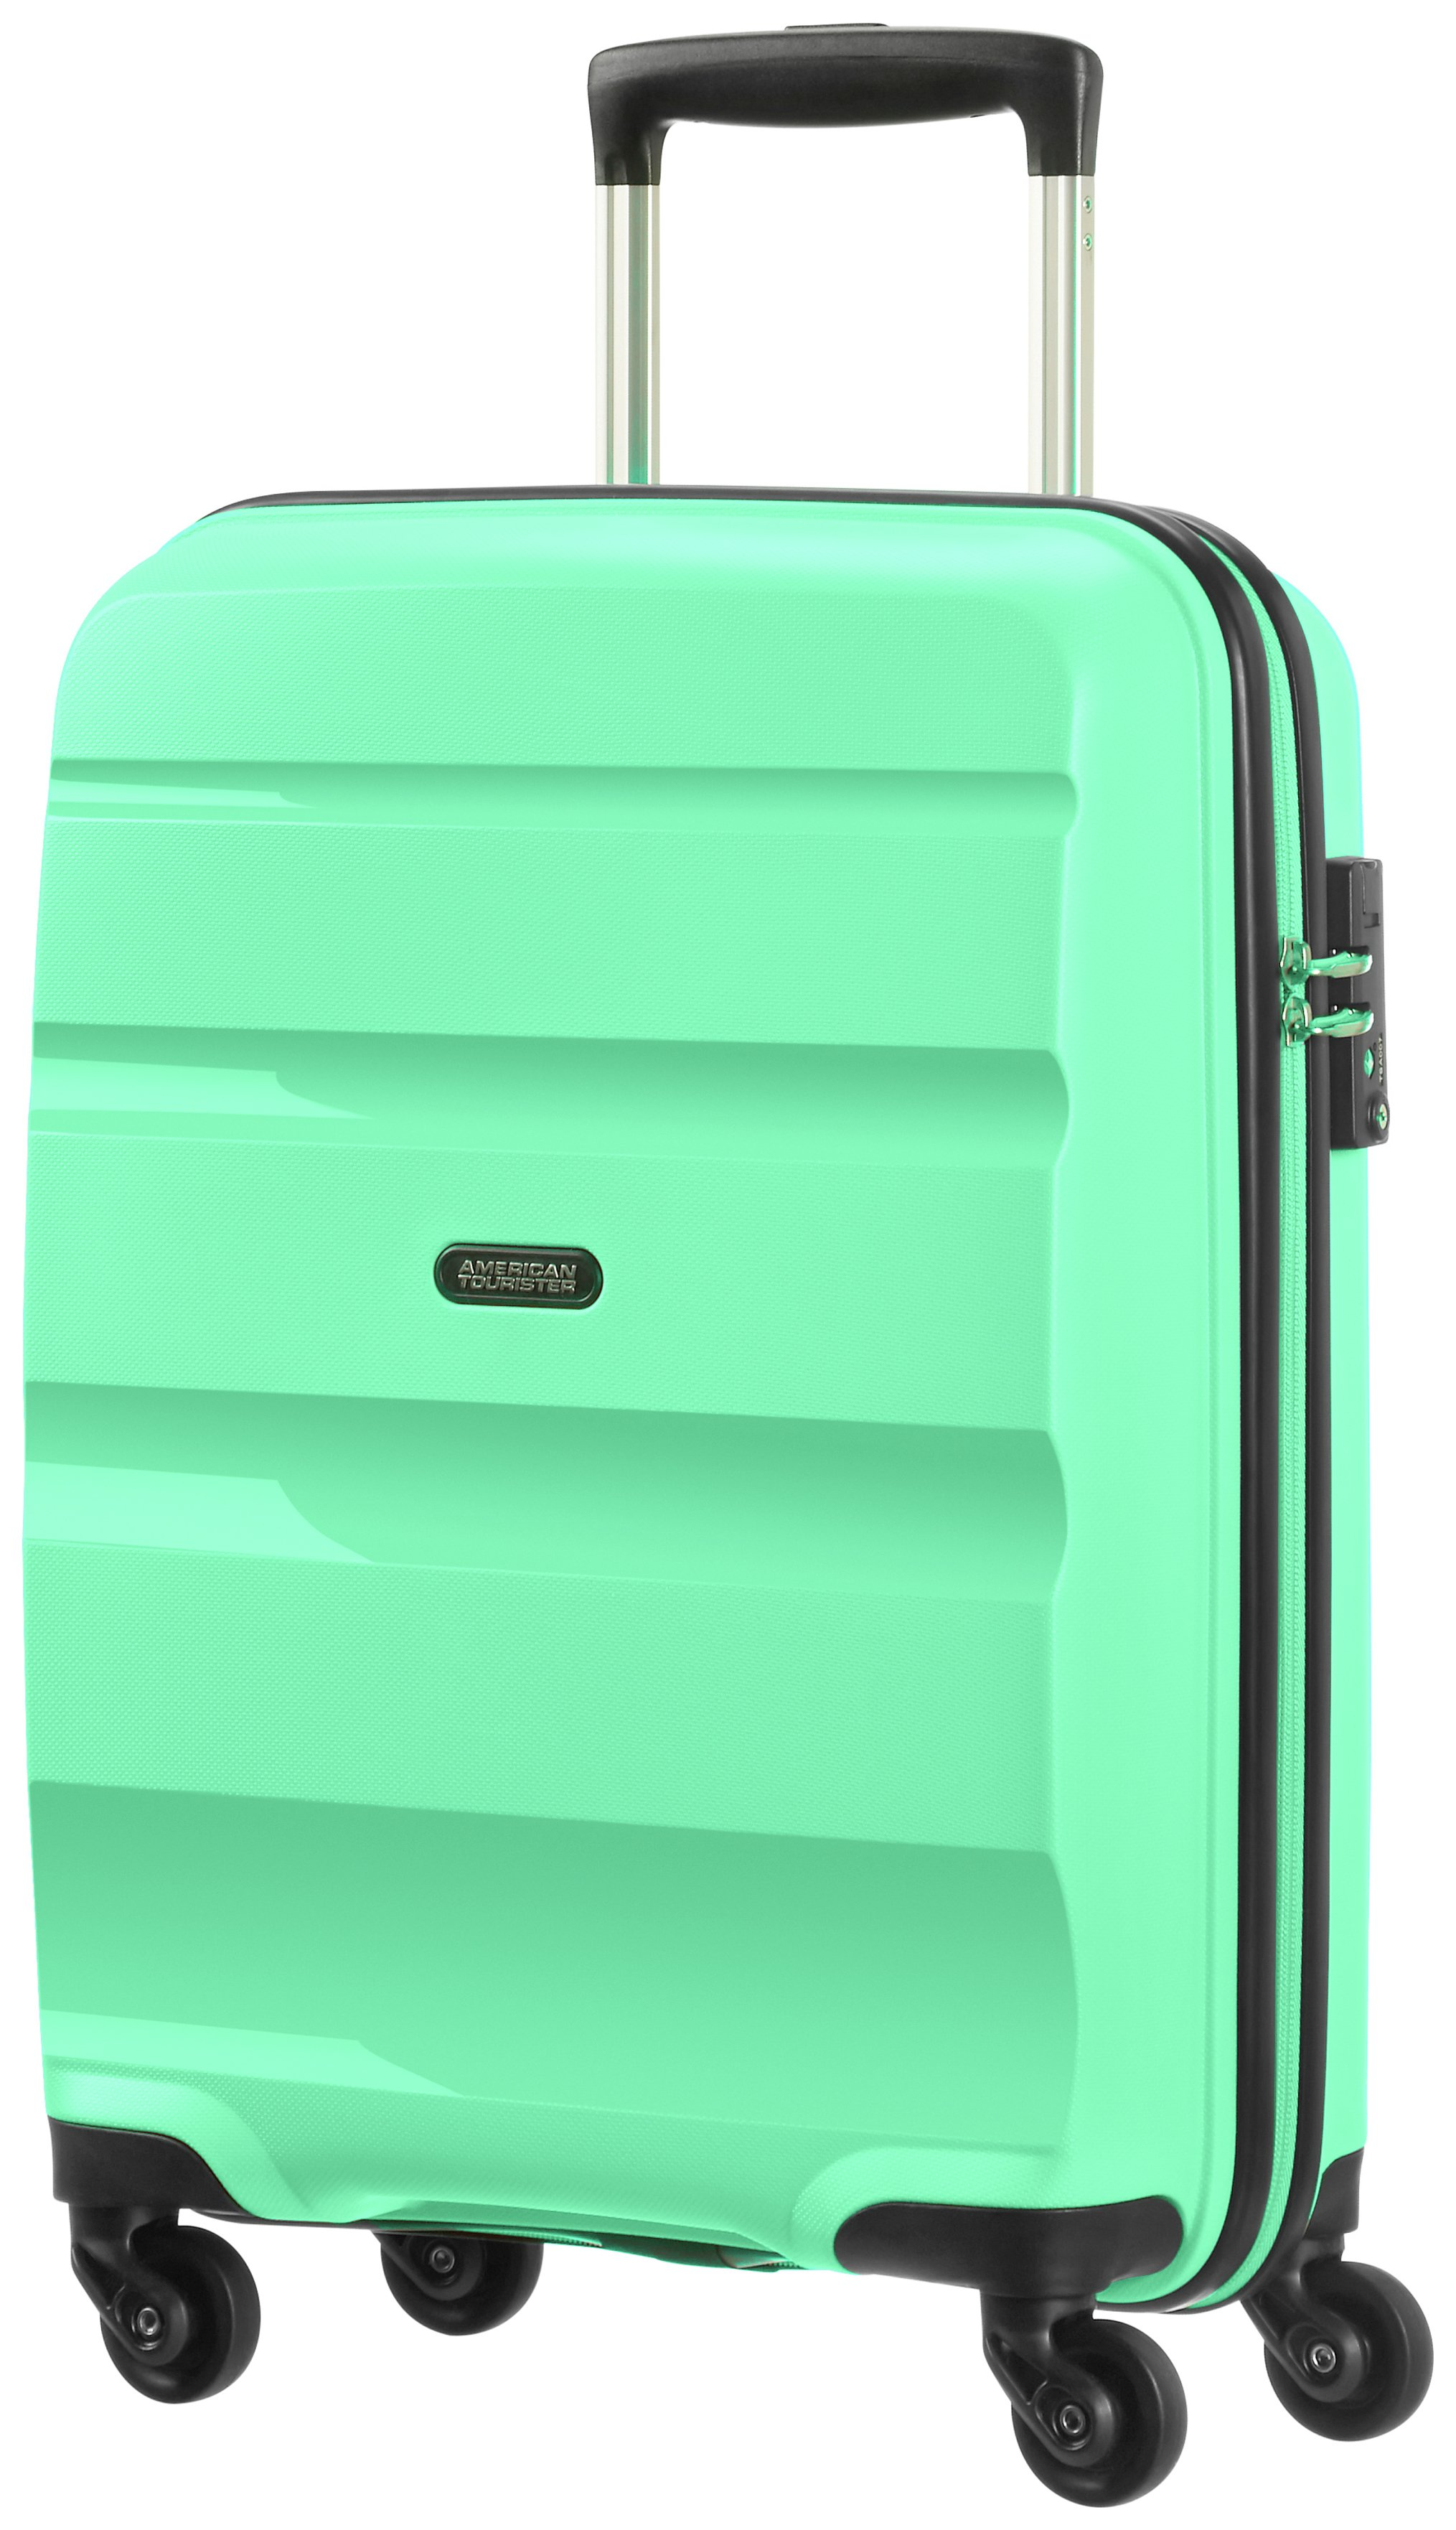 Image of American Tourister Bon Air 4 Wheel Spinner - Mint Green